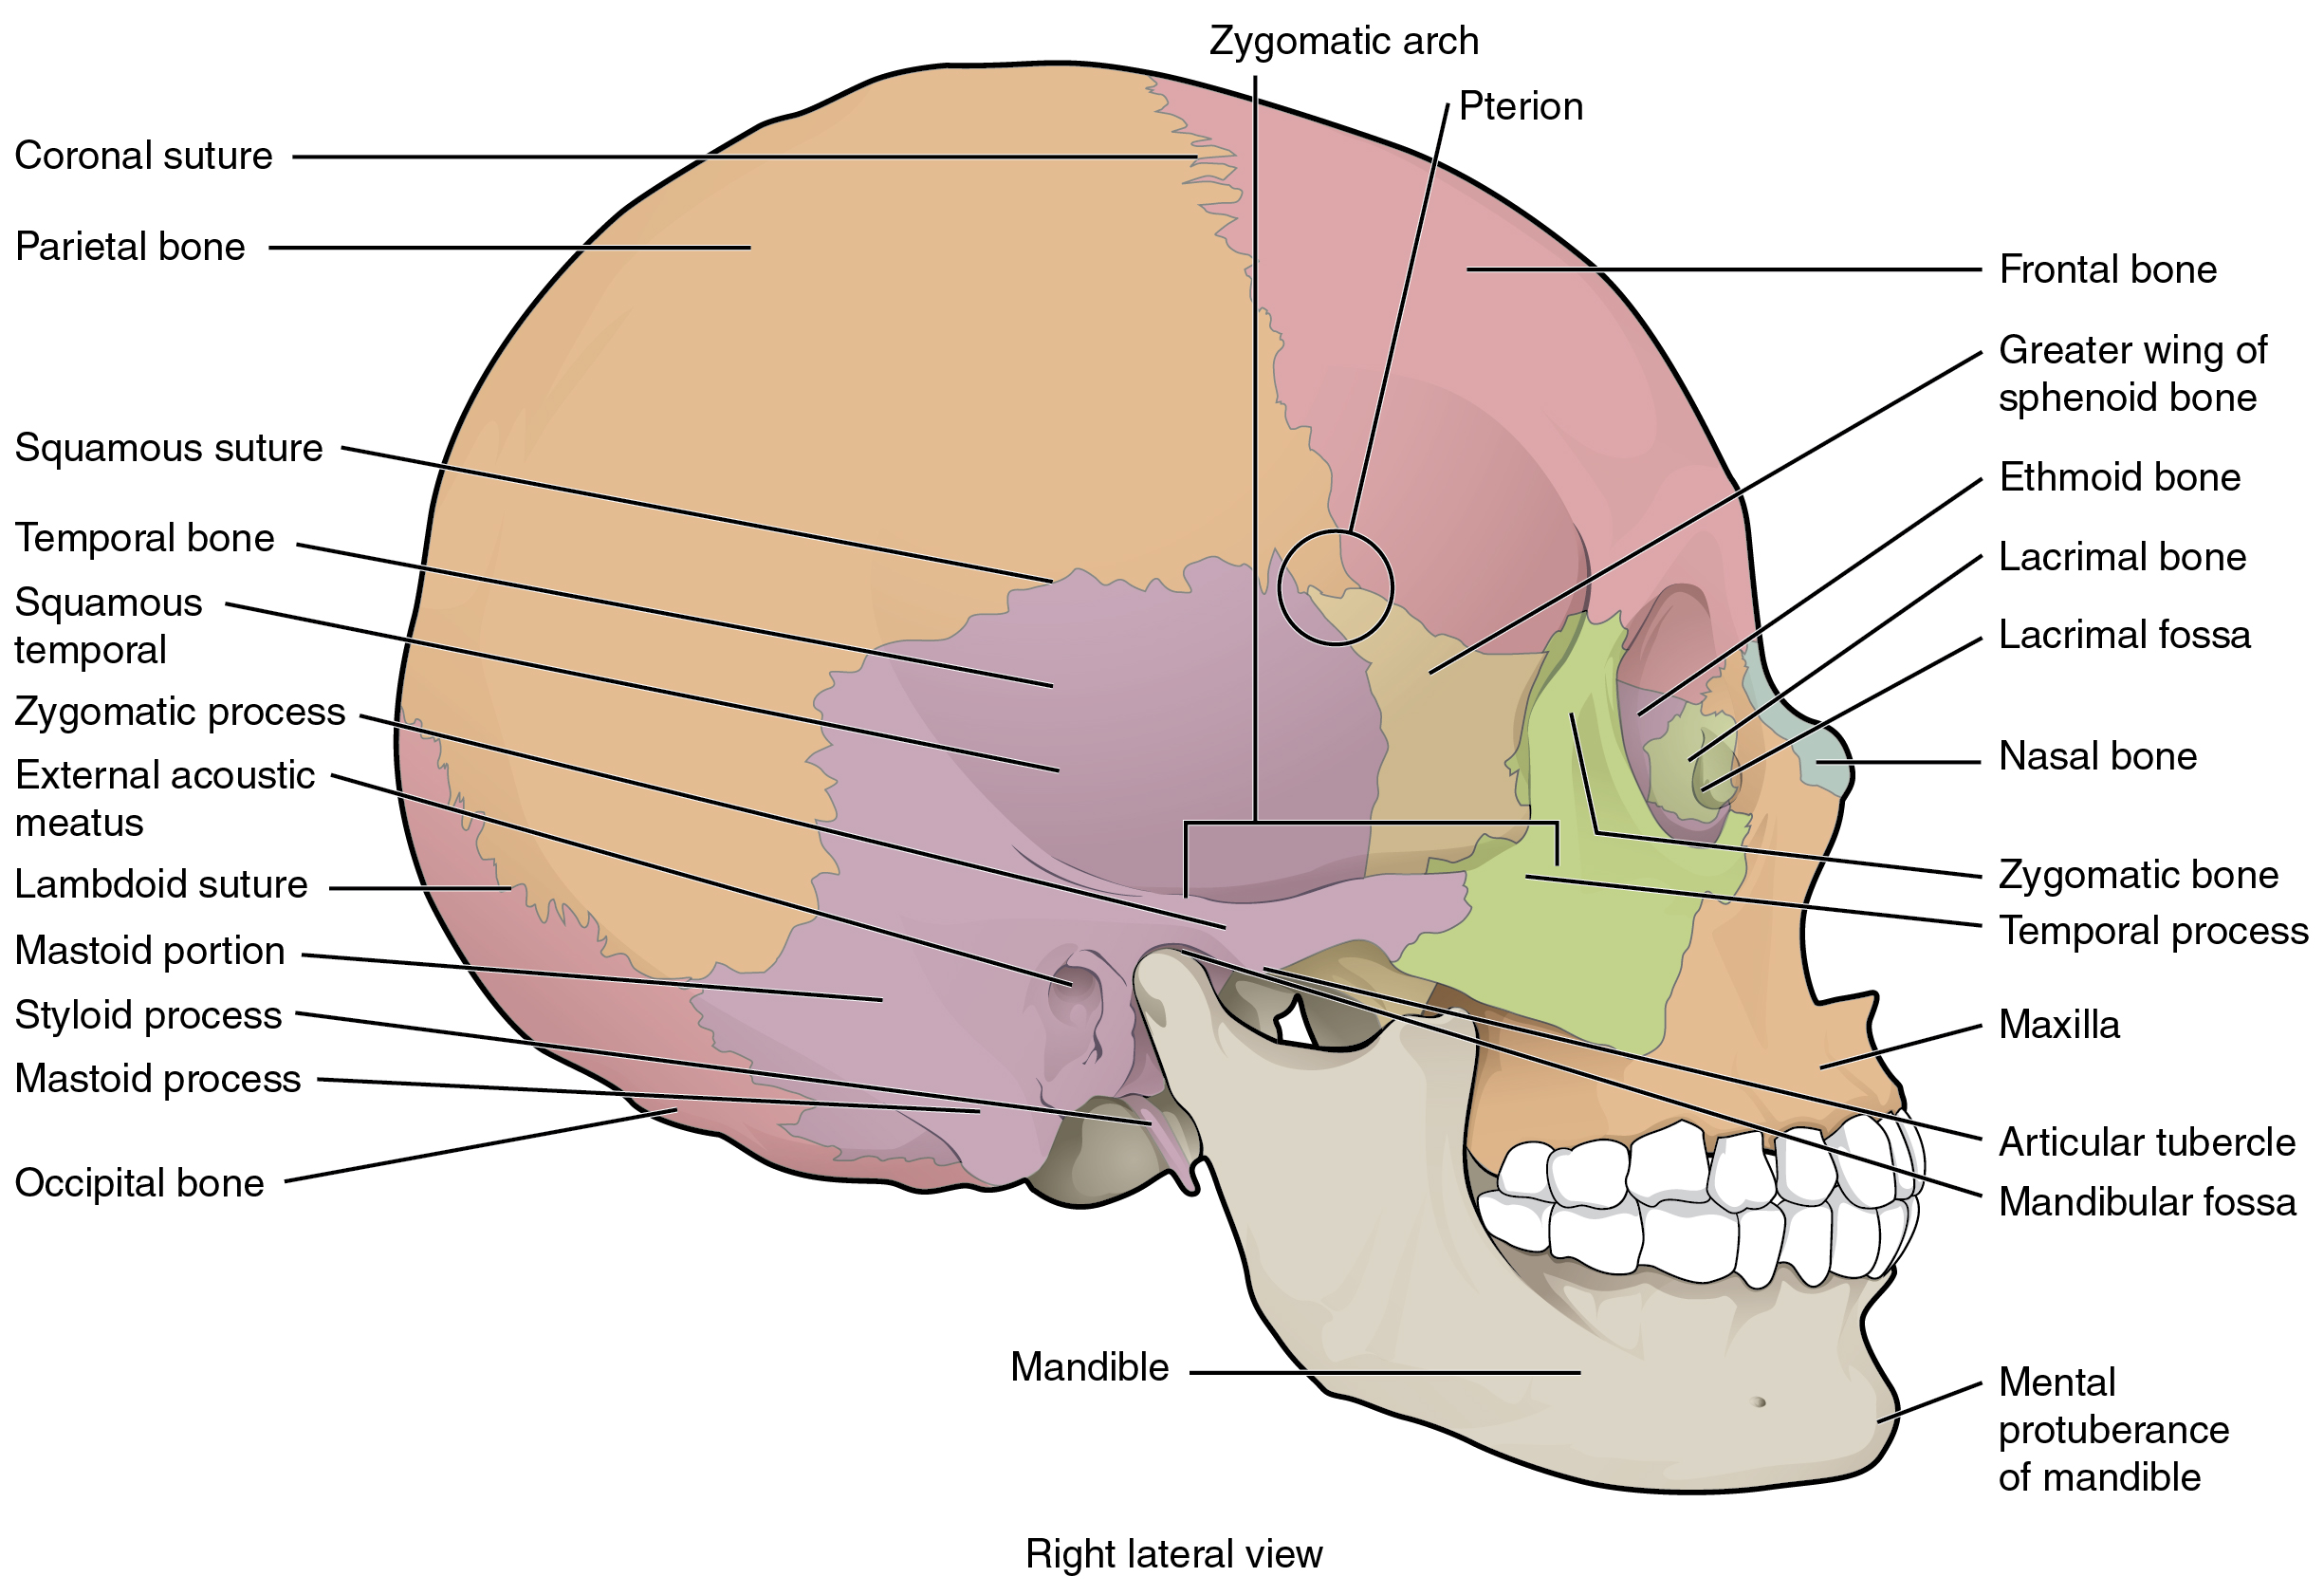 7 2 the skull \u2013 anatomy and physiology Facial Skeleton Diagram this image shows the lateral view of the human skull and identifies the major parts